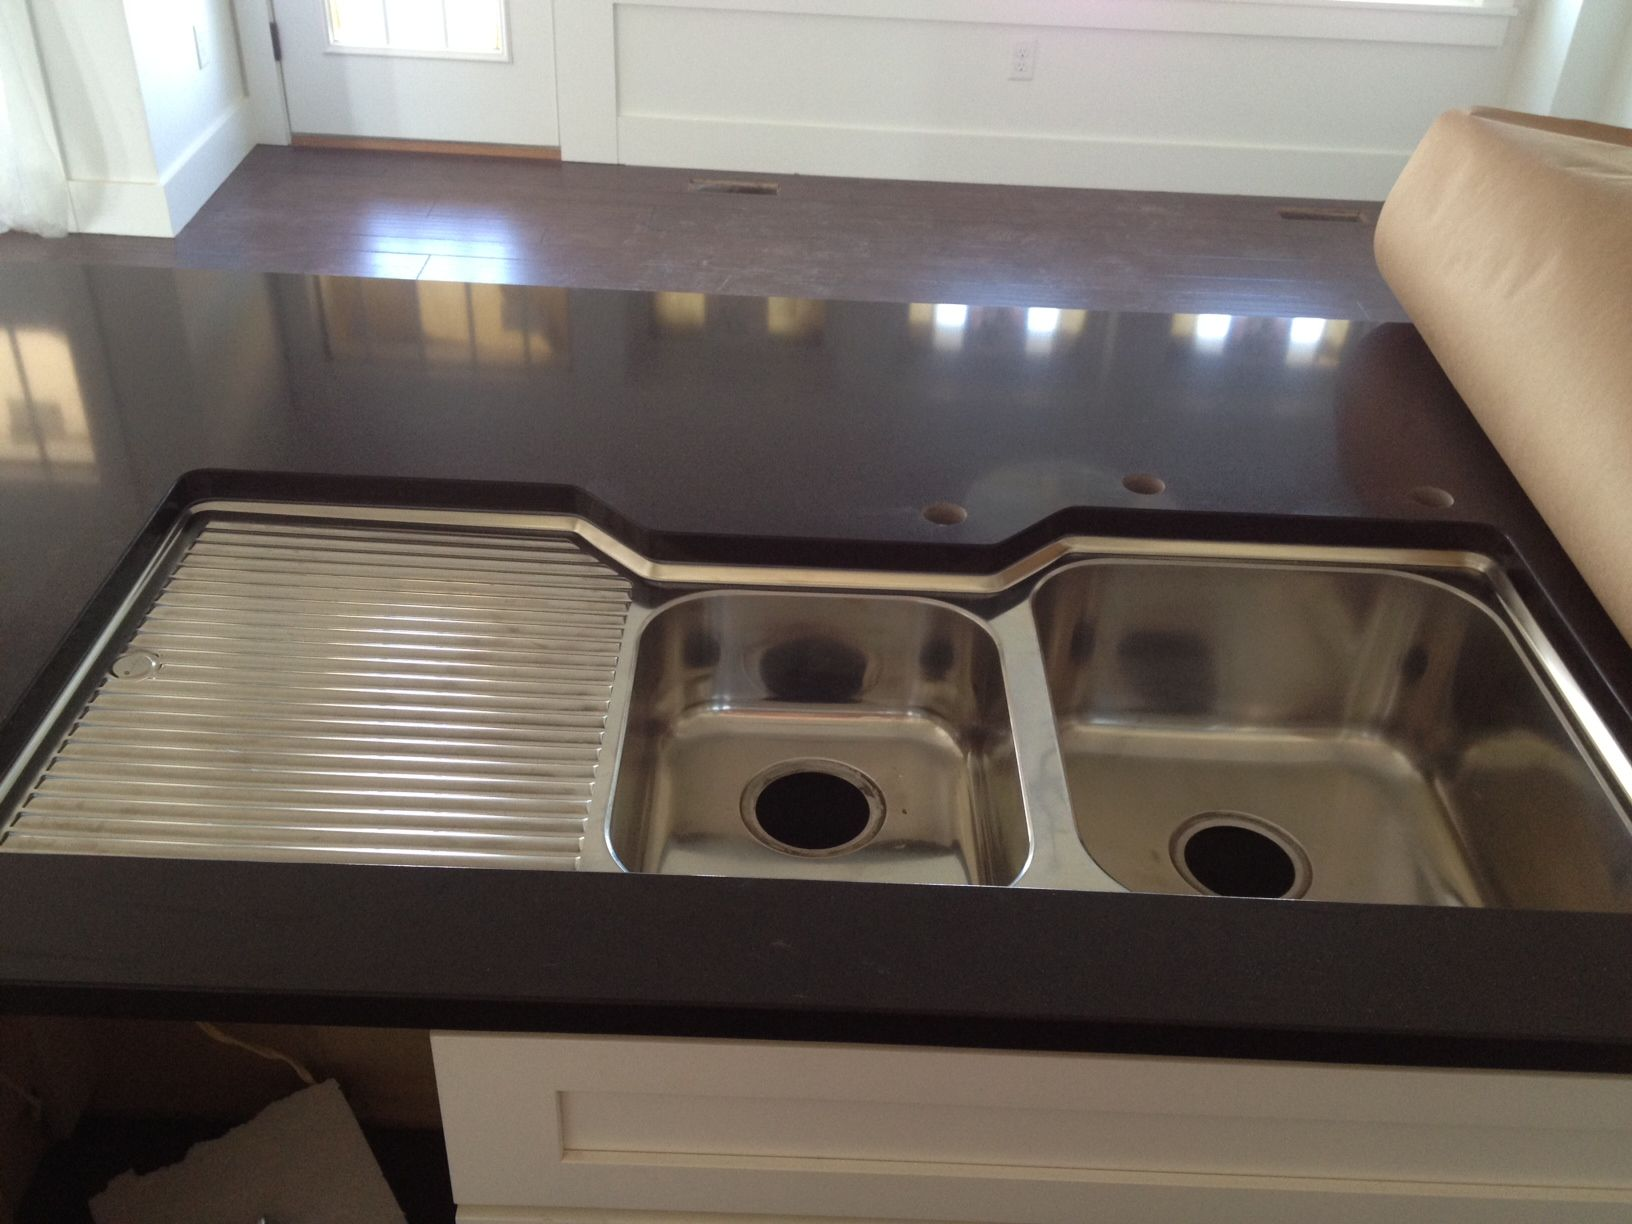 Kitchen Sinks With Drain Boards Gray Cabinets Pin By Angela Carroll On Sink Pinterest Farmhouse Double Basin Left Drainboard Oliveri Bowl Integrated